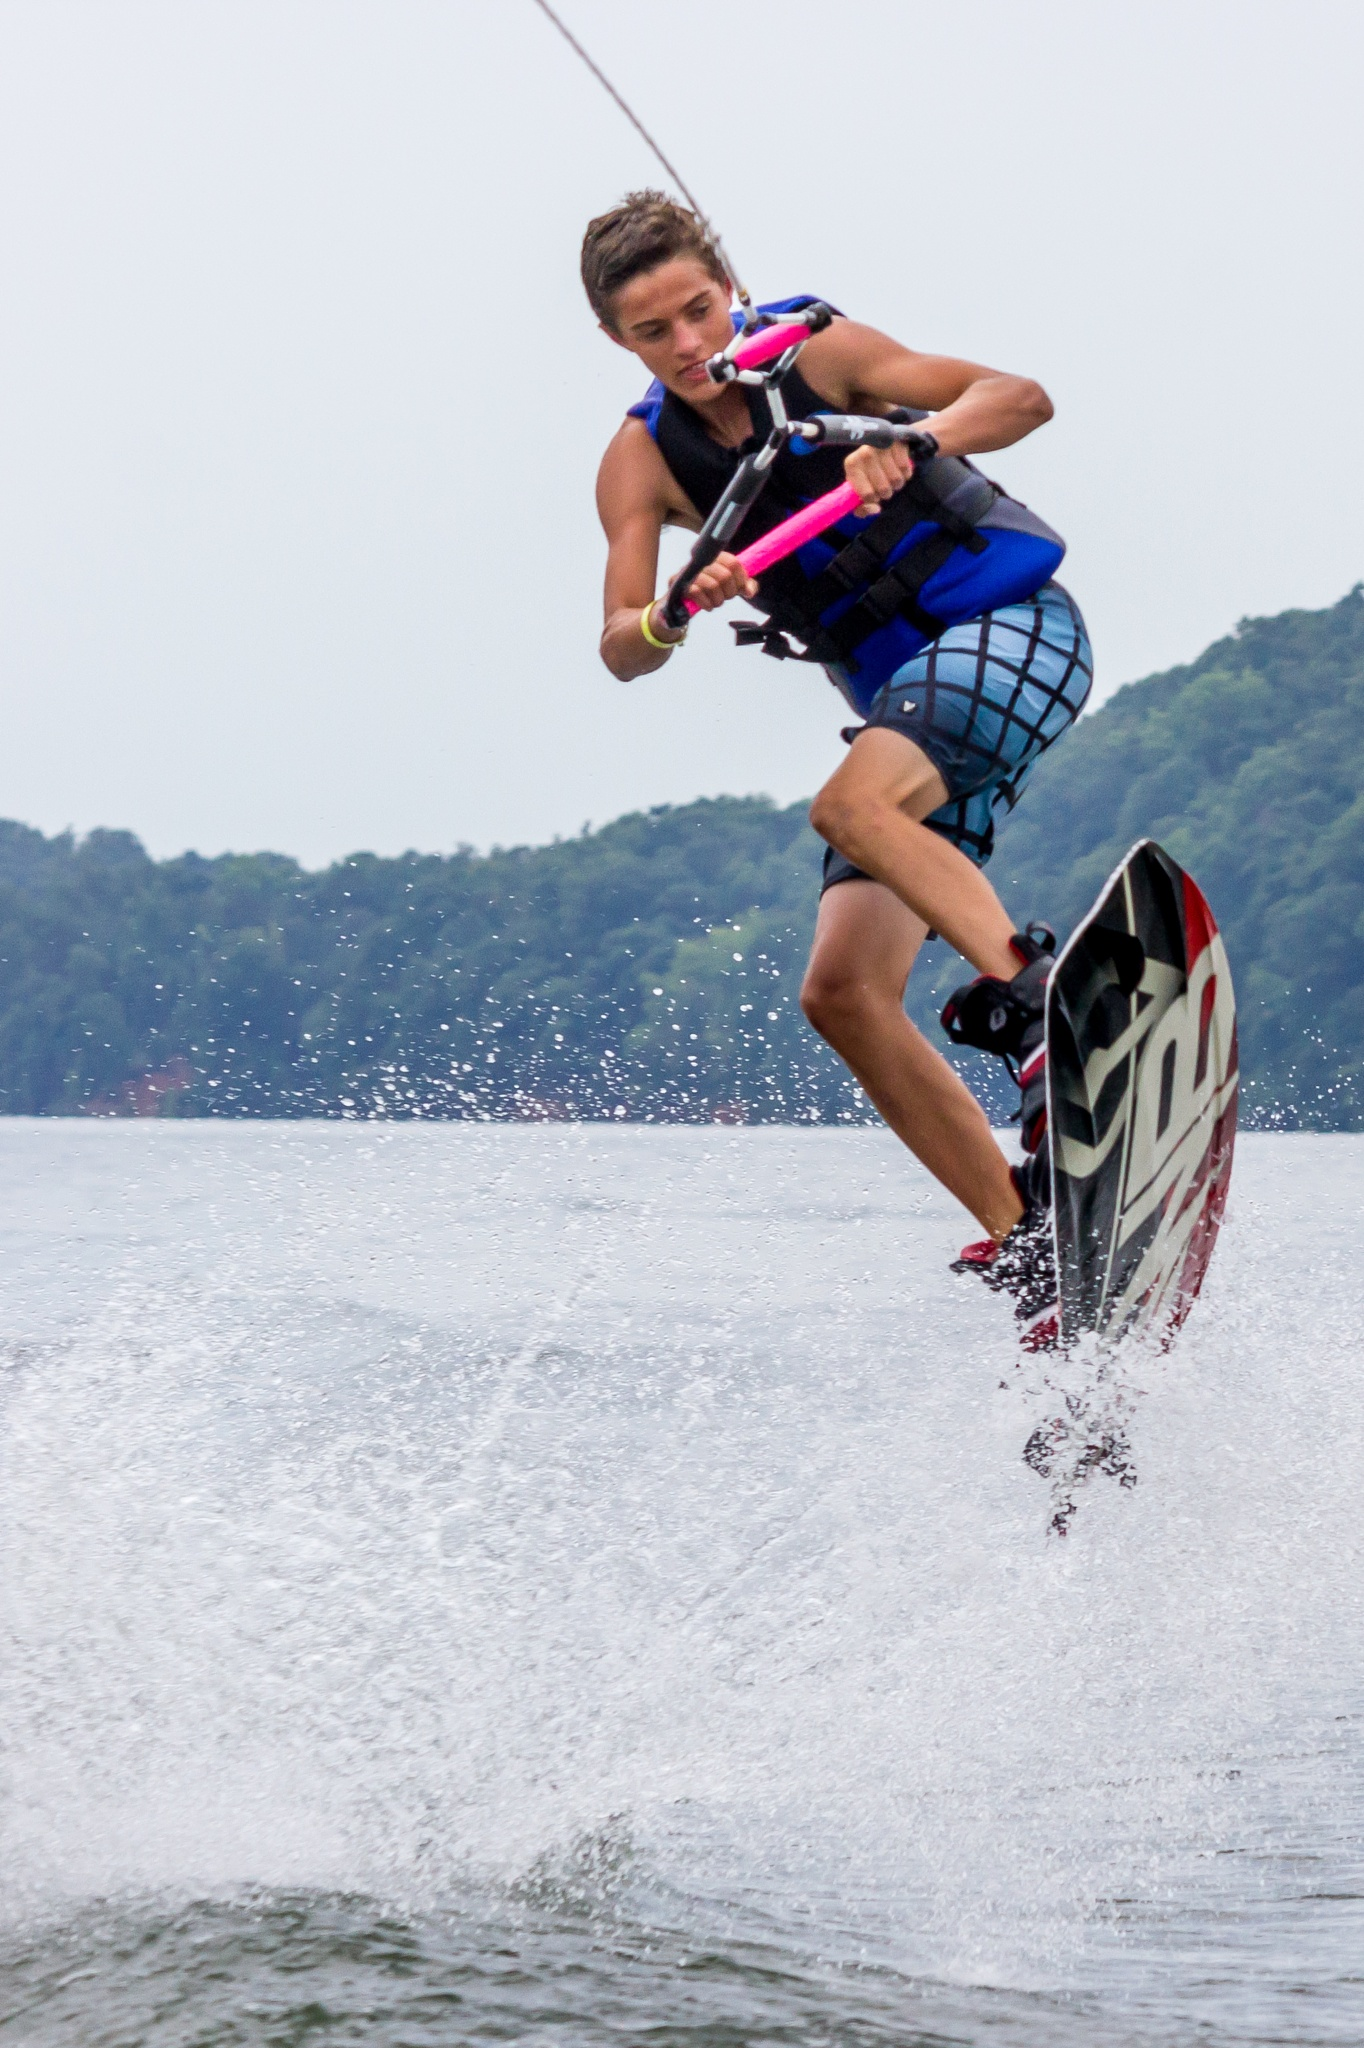 Wakeboarder by manofhg